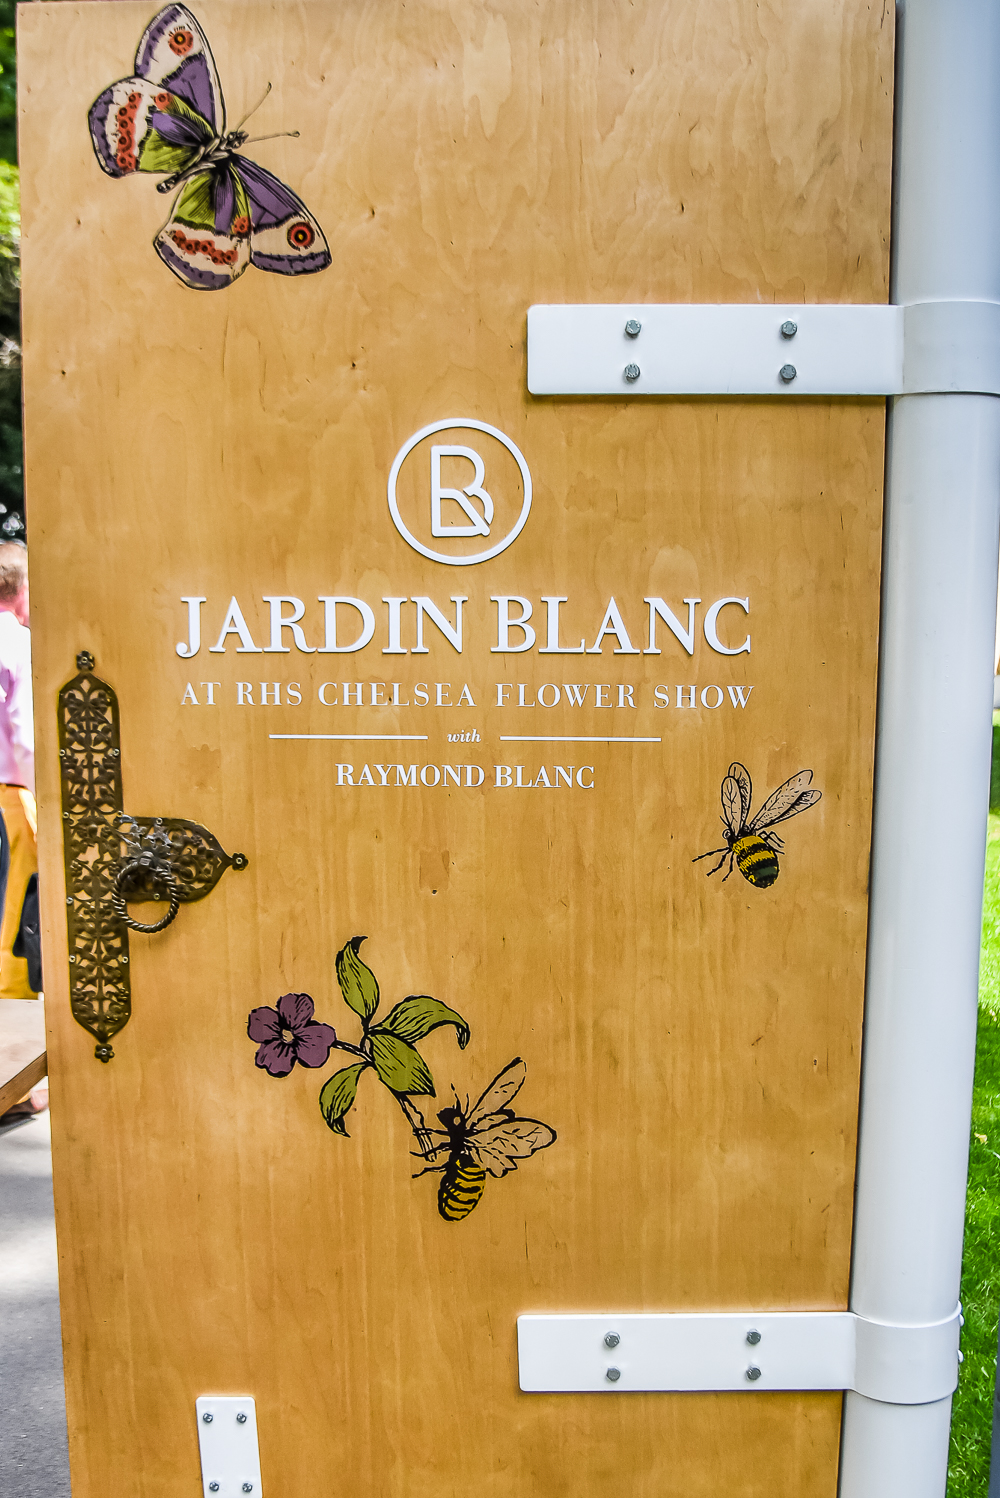 Chelsea flower show 2017 corporate entertainment packages - On This Sweltering May Day We Were Lucky Enough To Be Starting Our Day One Of The Show S Hospitality Tents Catered By The Man Himself Raymond Blanc